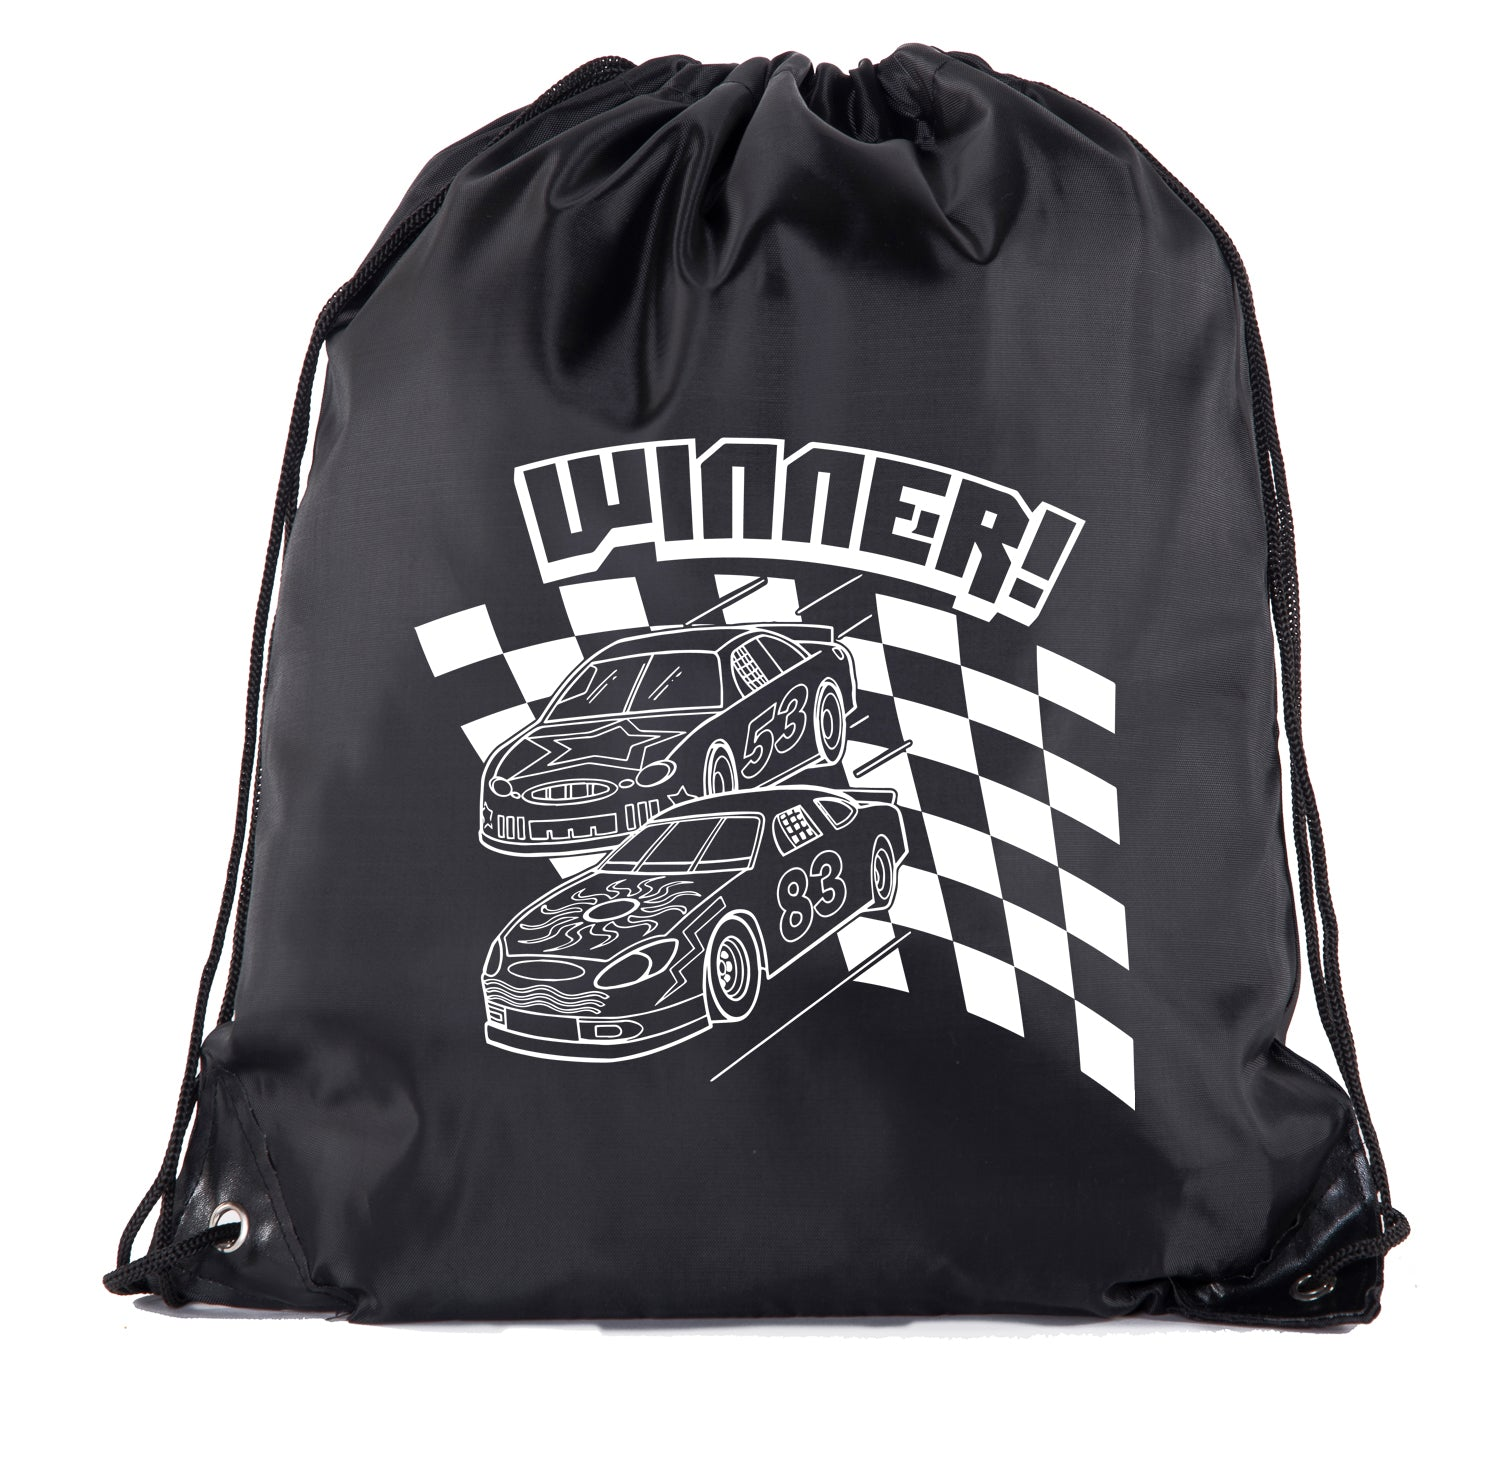 Accessory - Race Car Drawstring Backpacks| Race Car Cinch Good Bag Party Favors For Boys And Girls